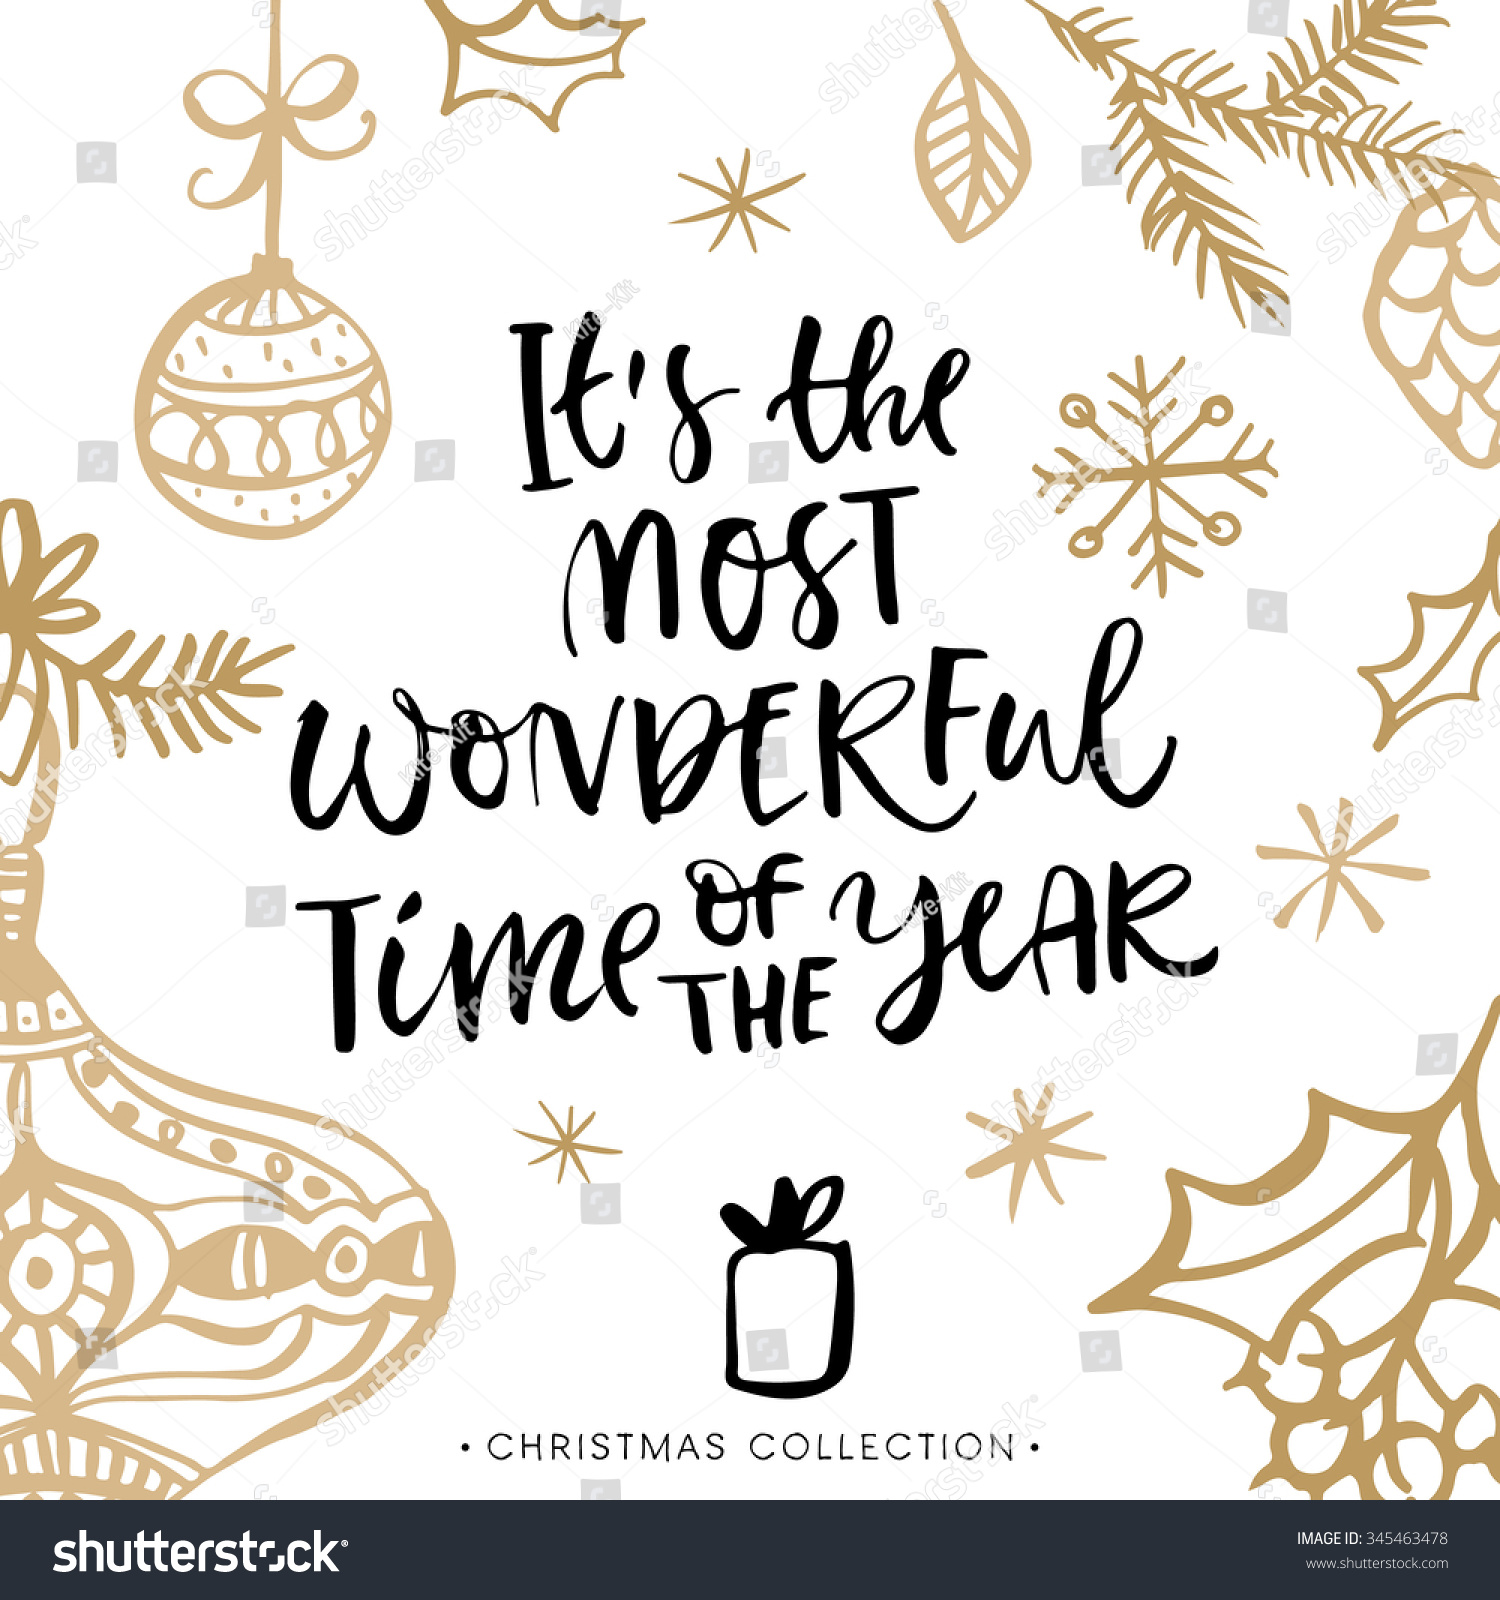 the most wonderful time of the year essay Buy its the most wonderful time of the year by edwar at jwpeppercom orchestra sheet music written in 1963, this holiday standard has been covered by.